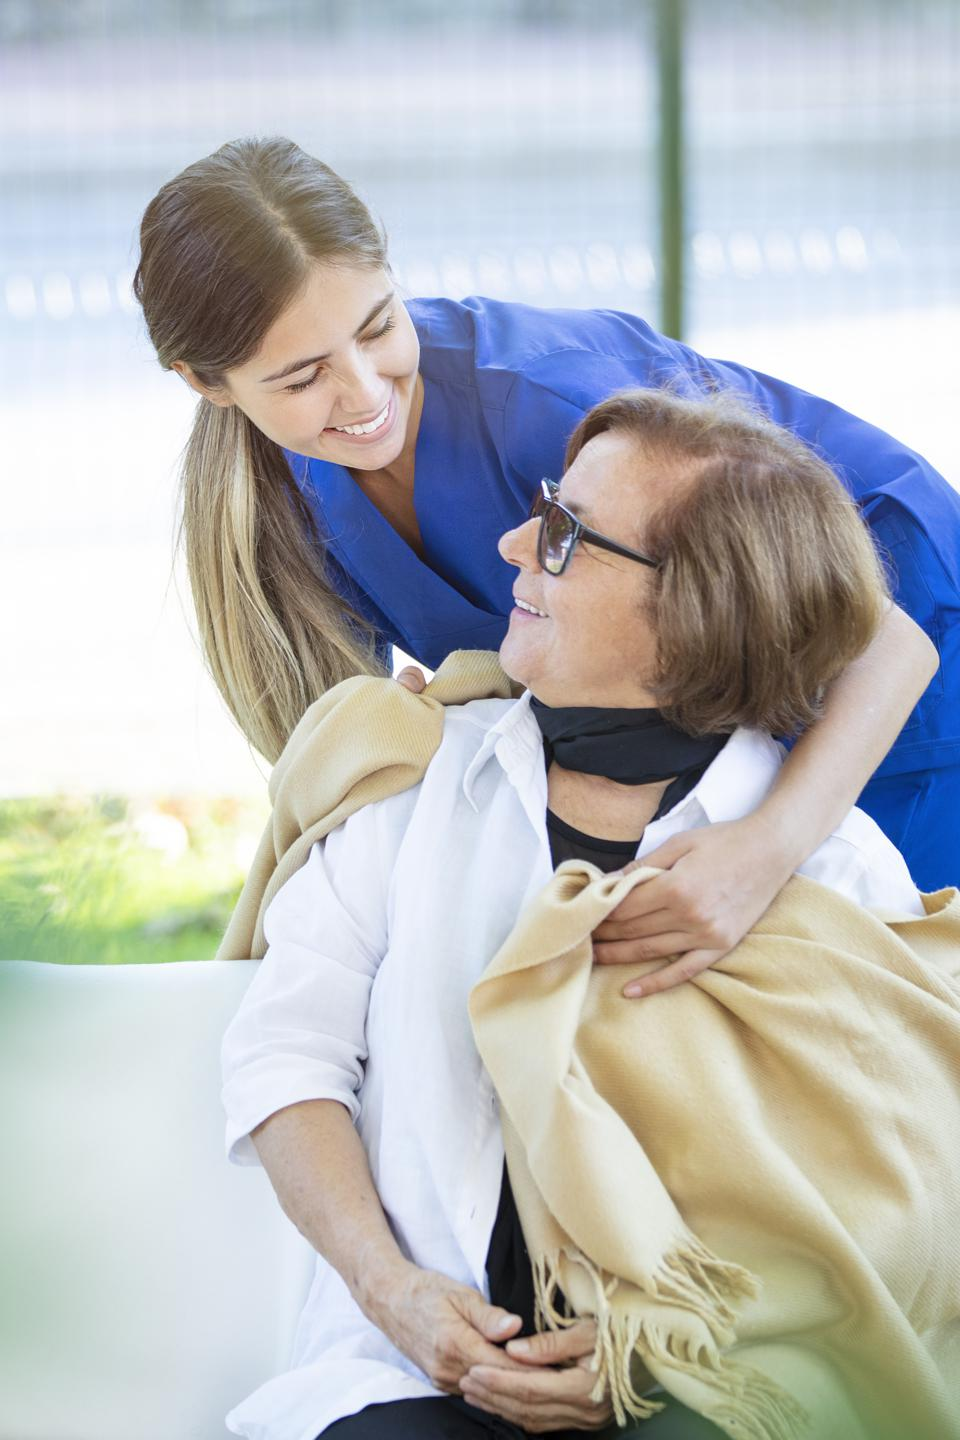 Nurse helping old woman for comfort and care